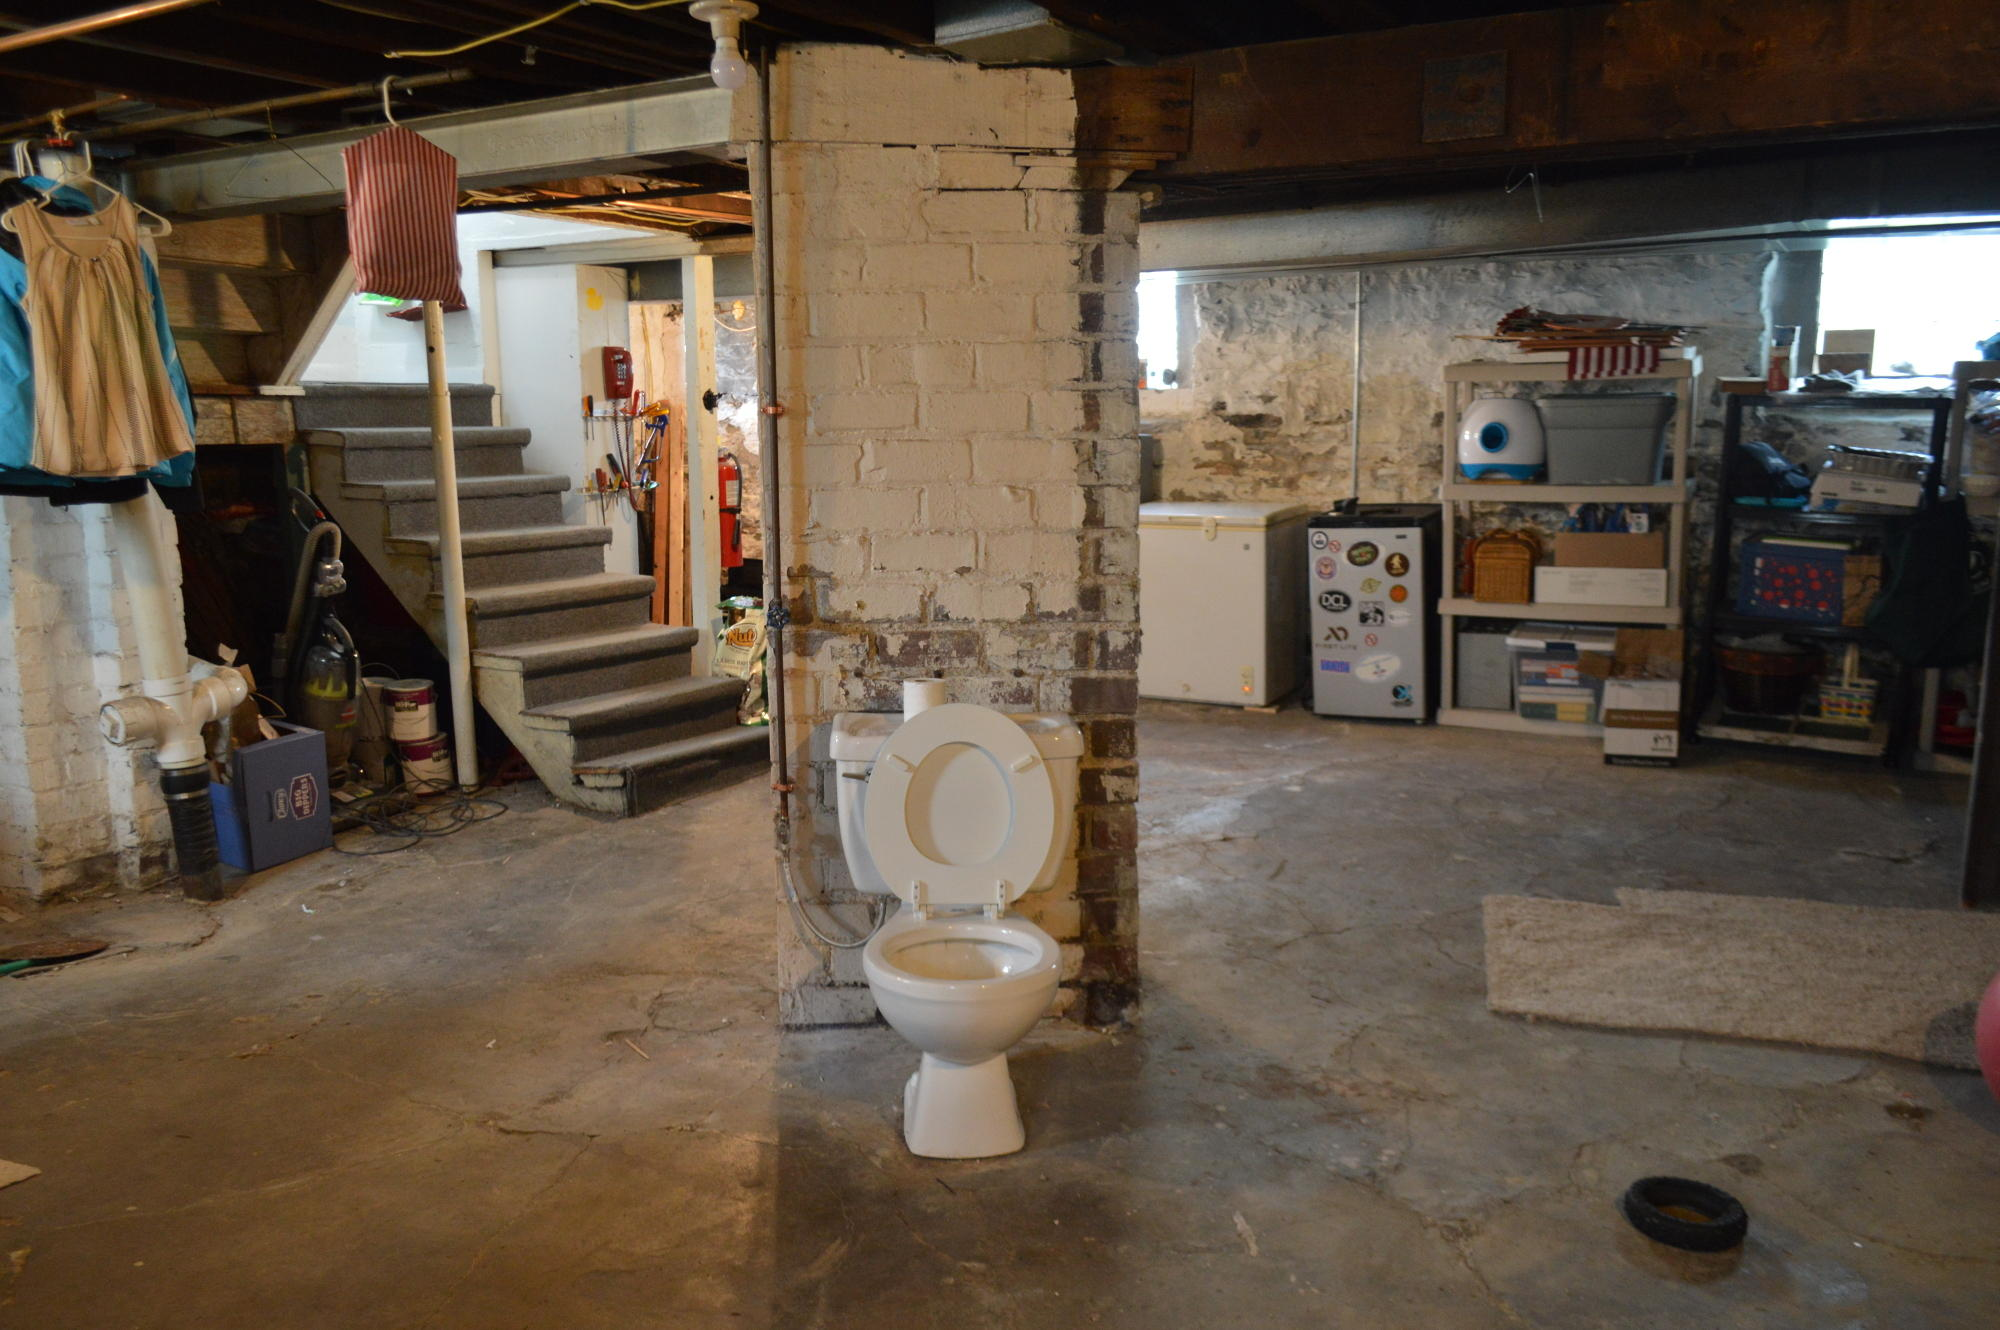 Documenting The Pittsburgh Potty An Architectural Mystery